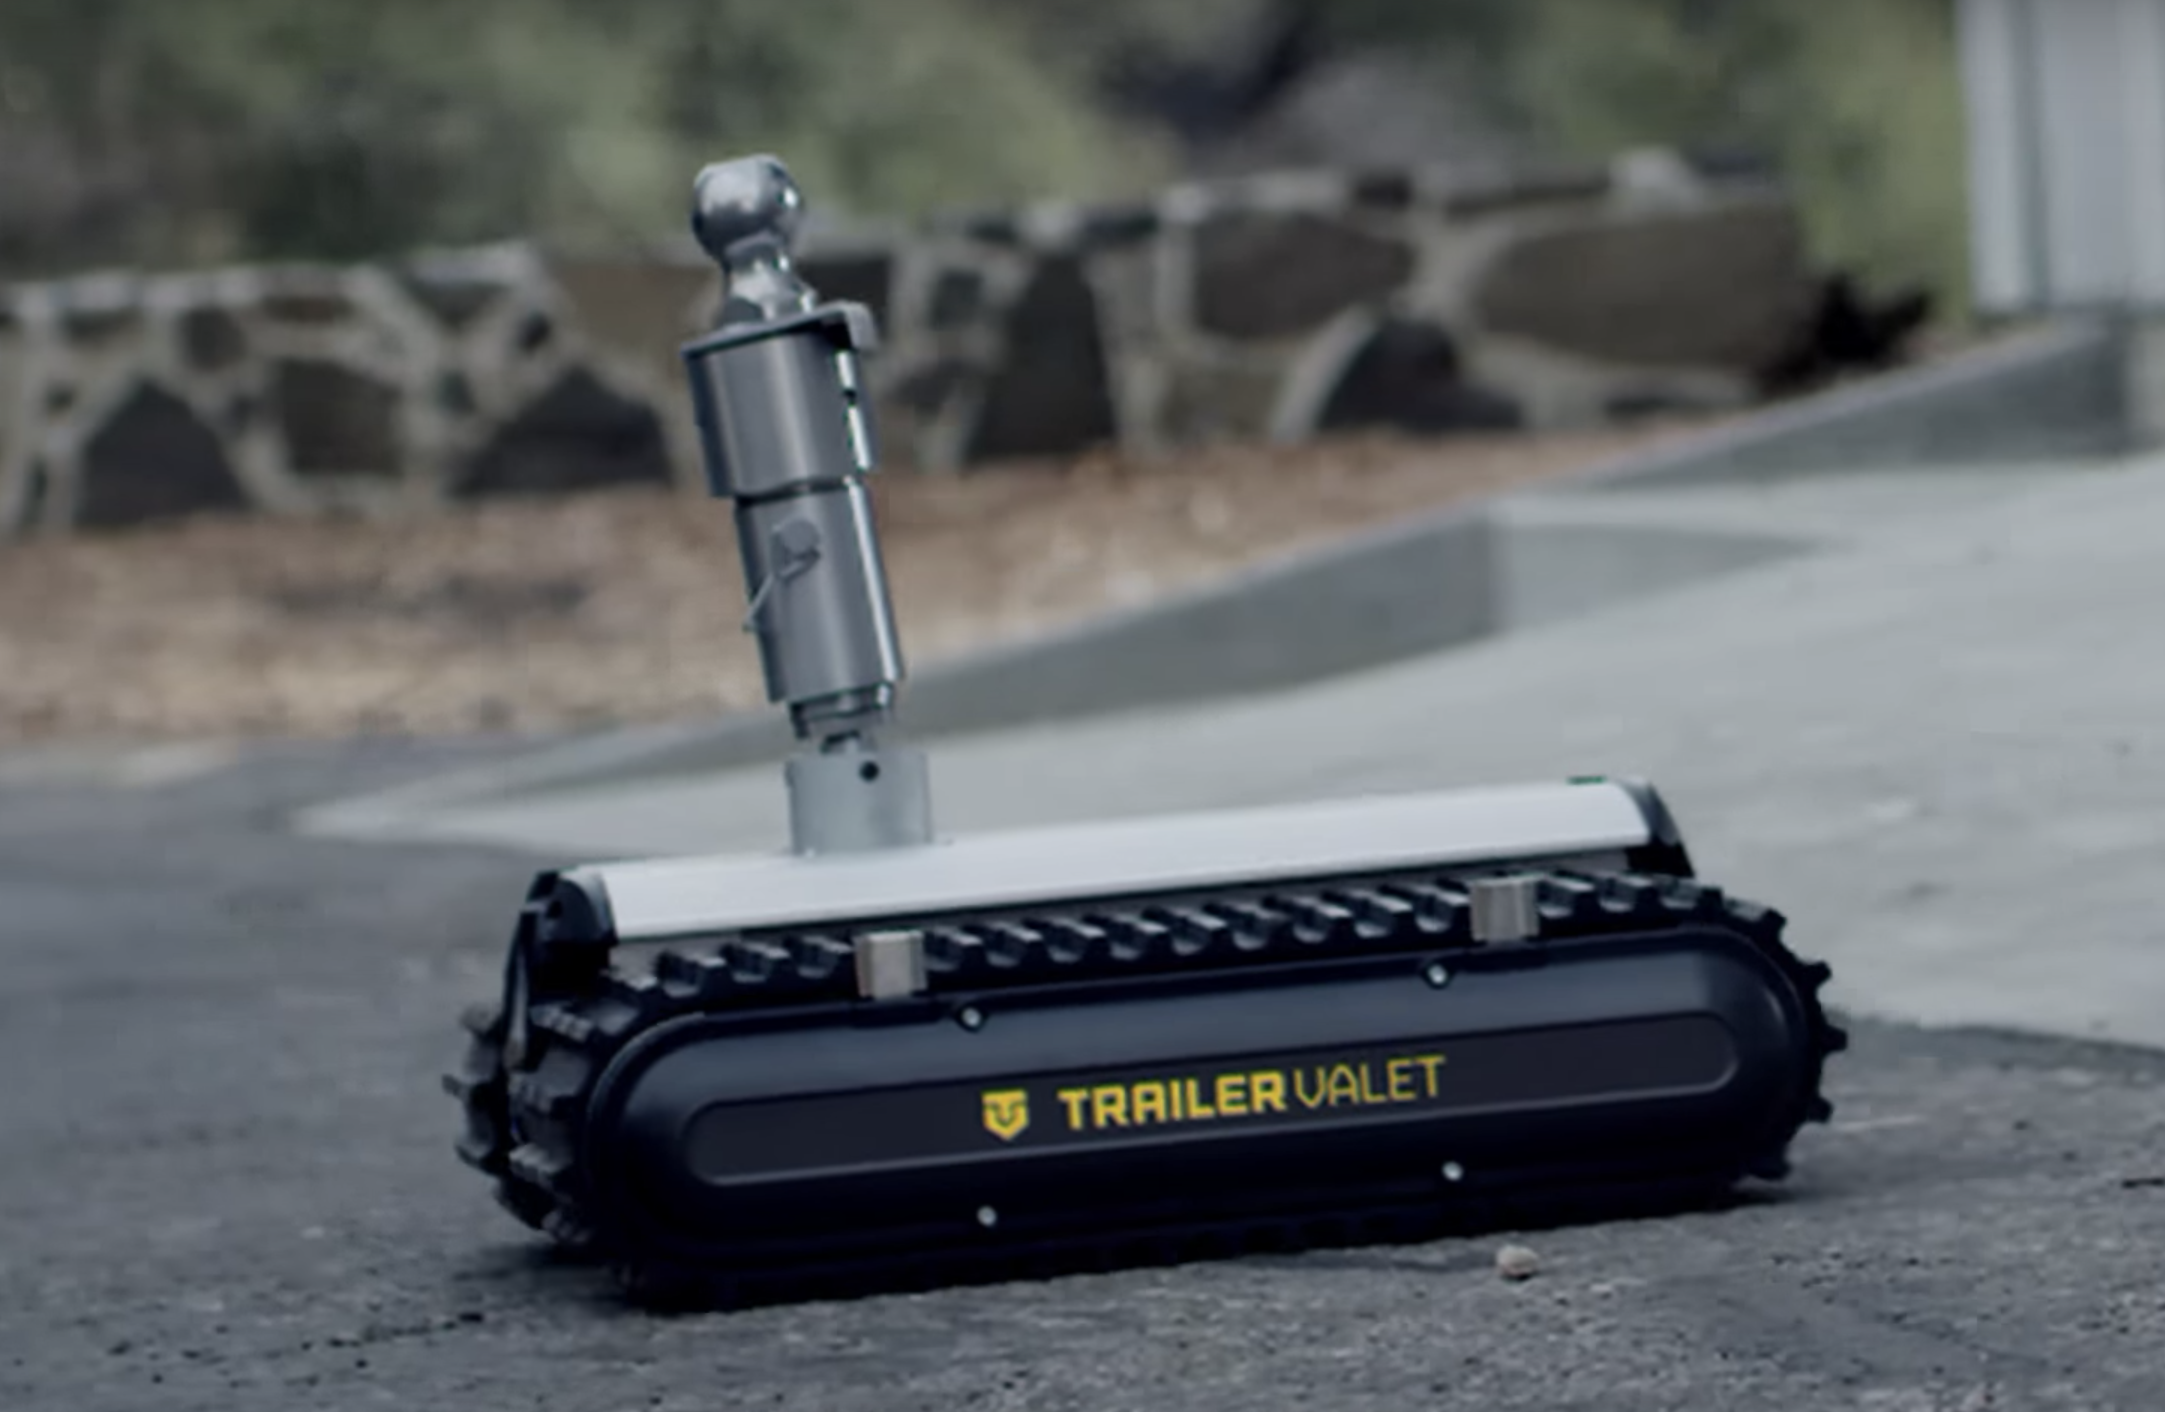 This small remote-controlled robot can tow up to 9,000